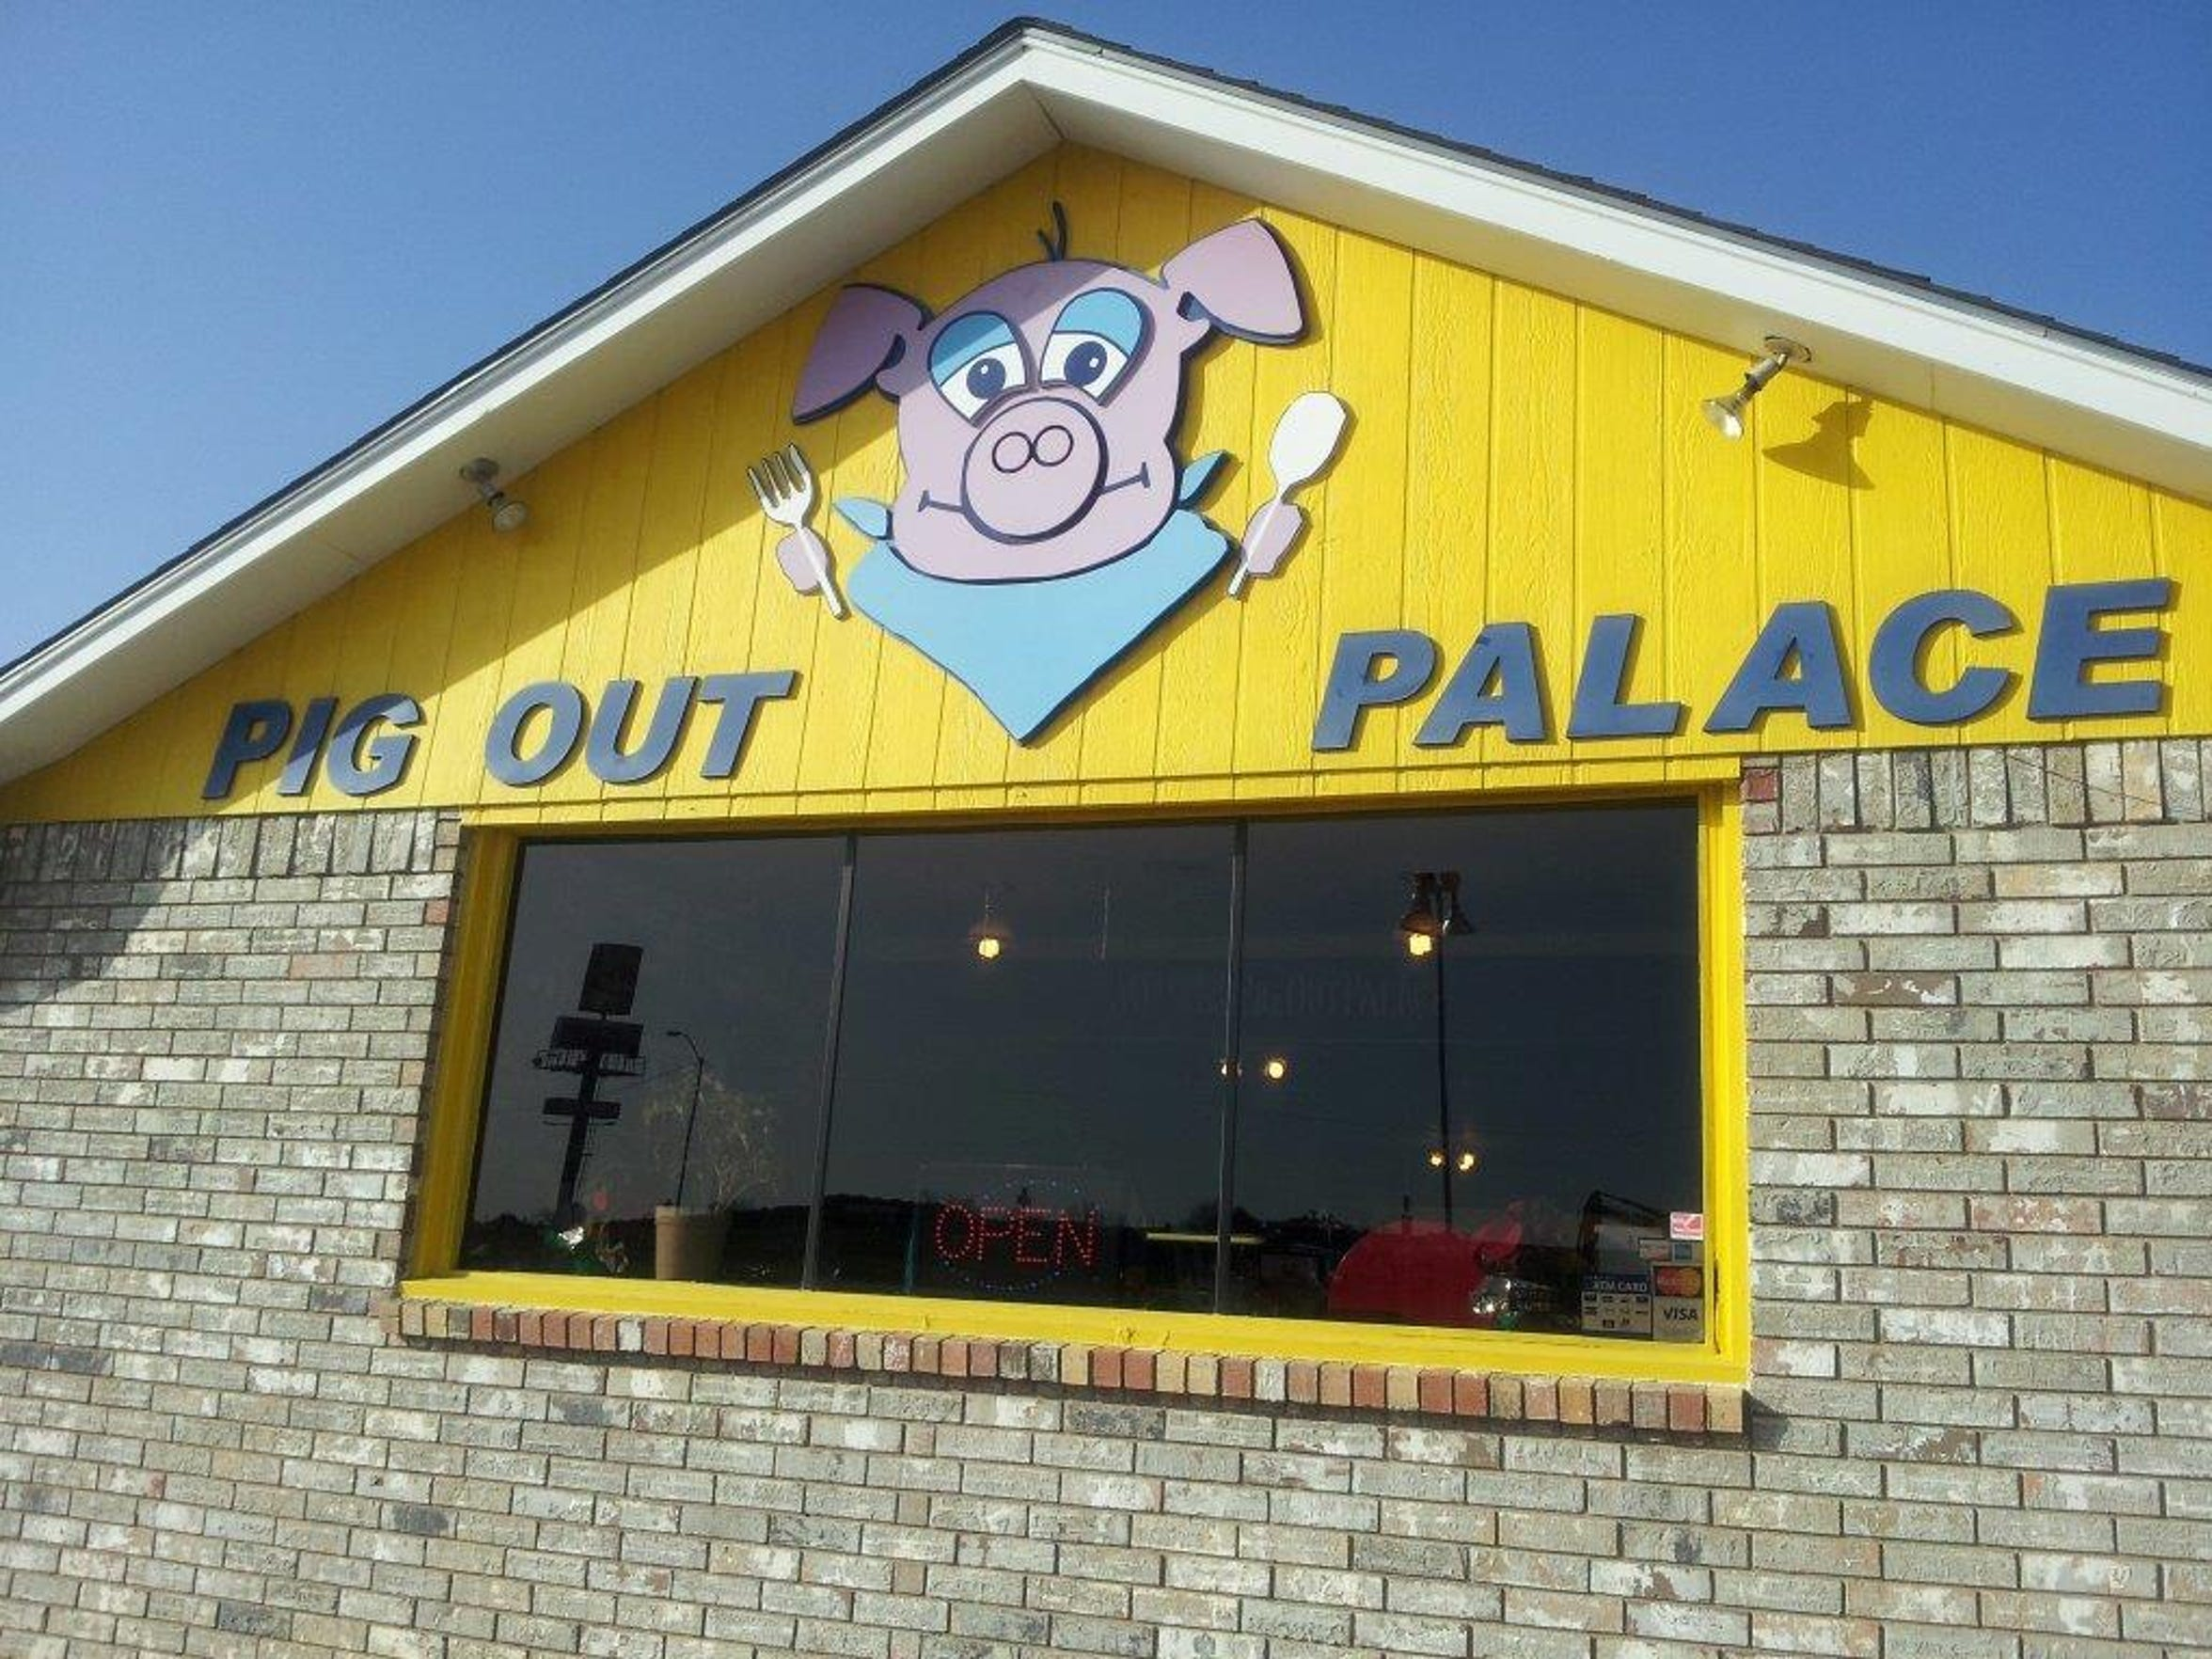 The Pig Out Palace in Henryetta, Okla., where Jody Rilee-Wilson's vehicle was eventually found. The buffet-style restaurant closed several years ago.